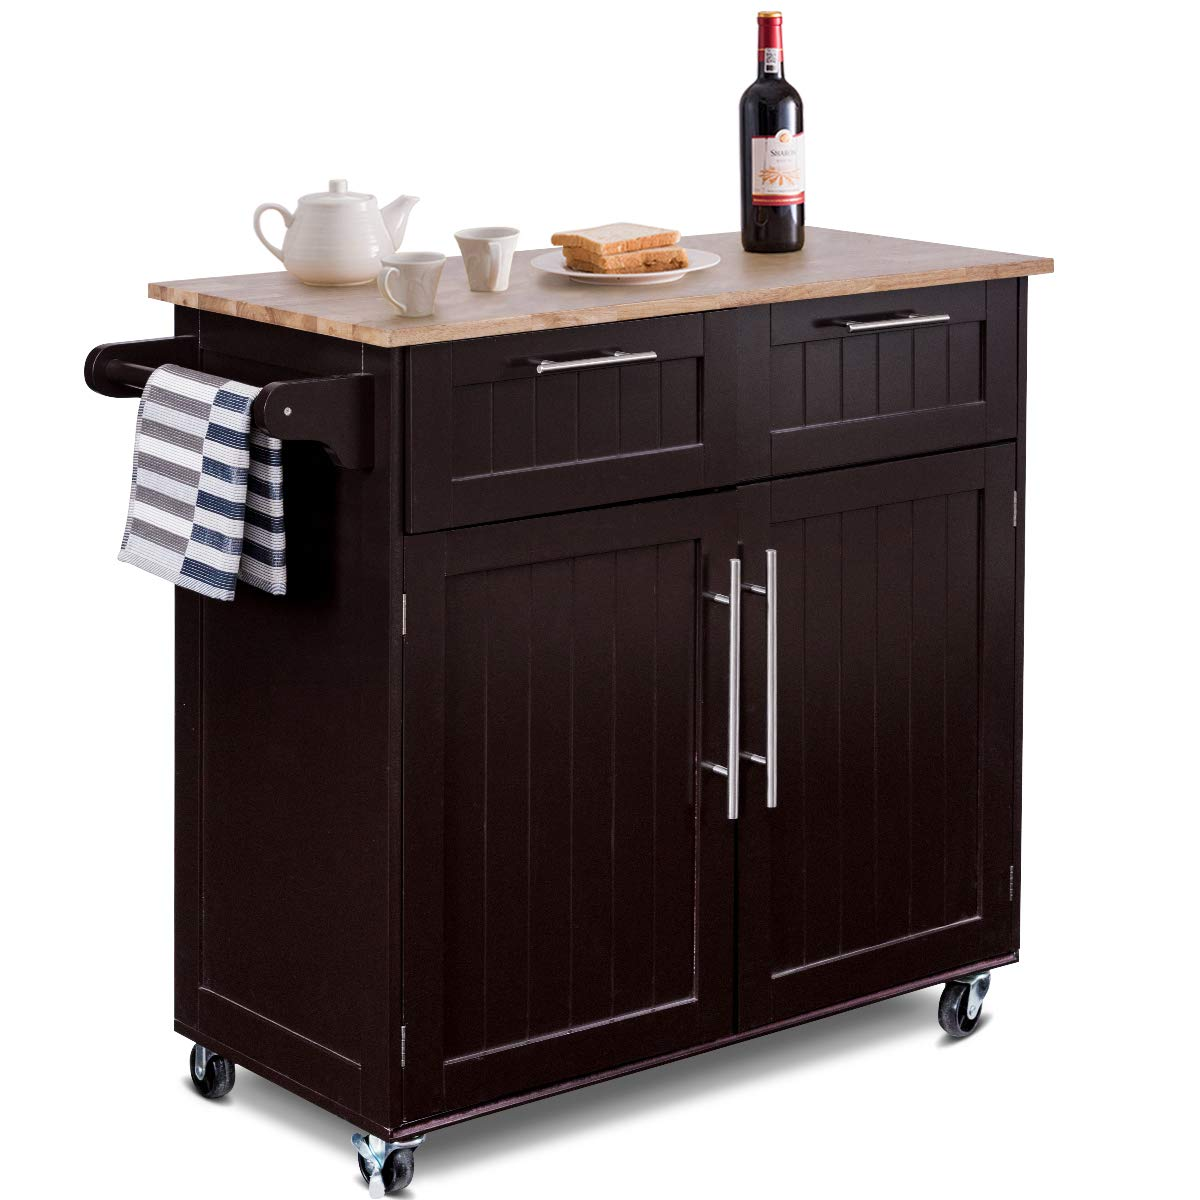 Giantex Kitchen Island Cart Rolling Storage Trolley Cart Home and Restaurant Serving Utility Cart with Drawers,Cabinet, Towel Rack and Wood Top by Giantex (Image #1)